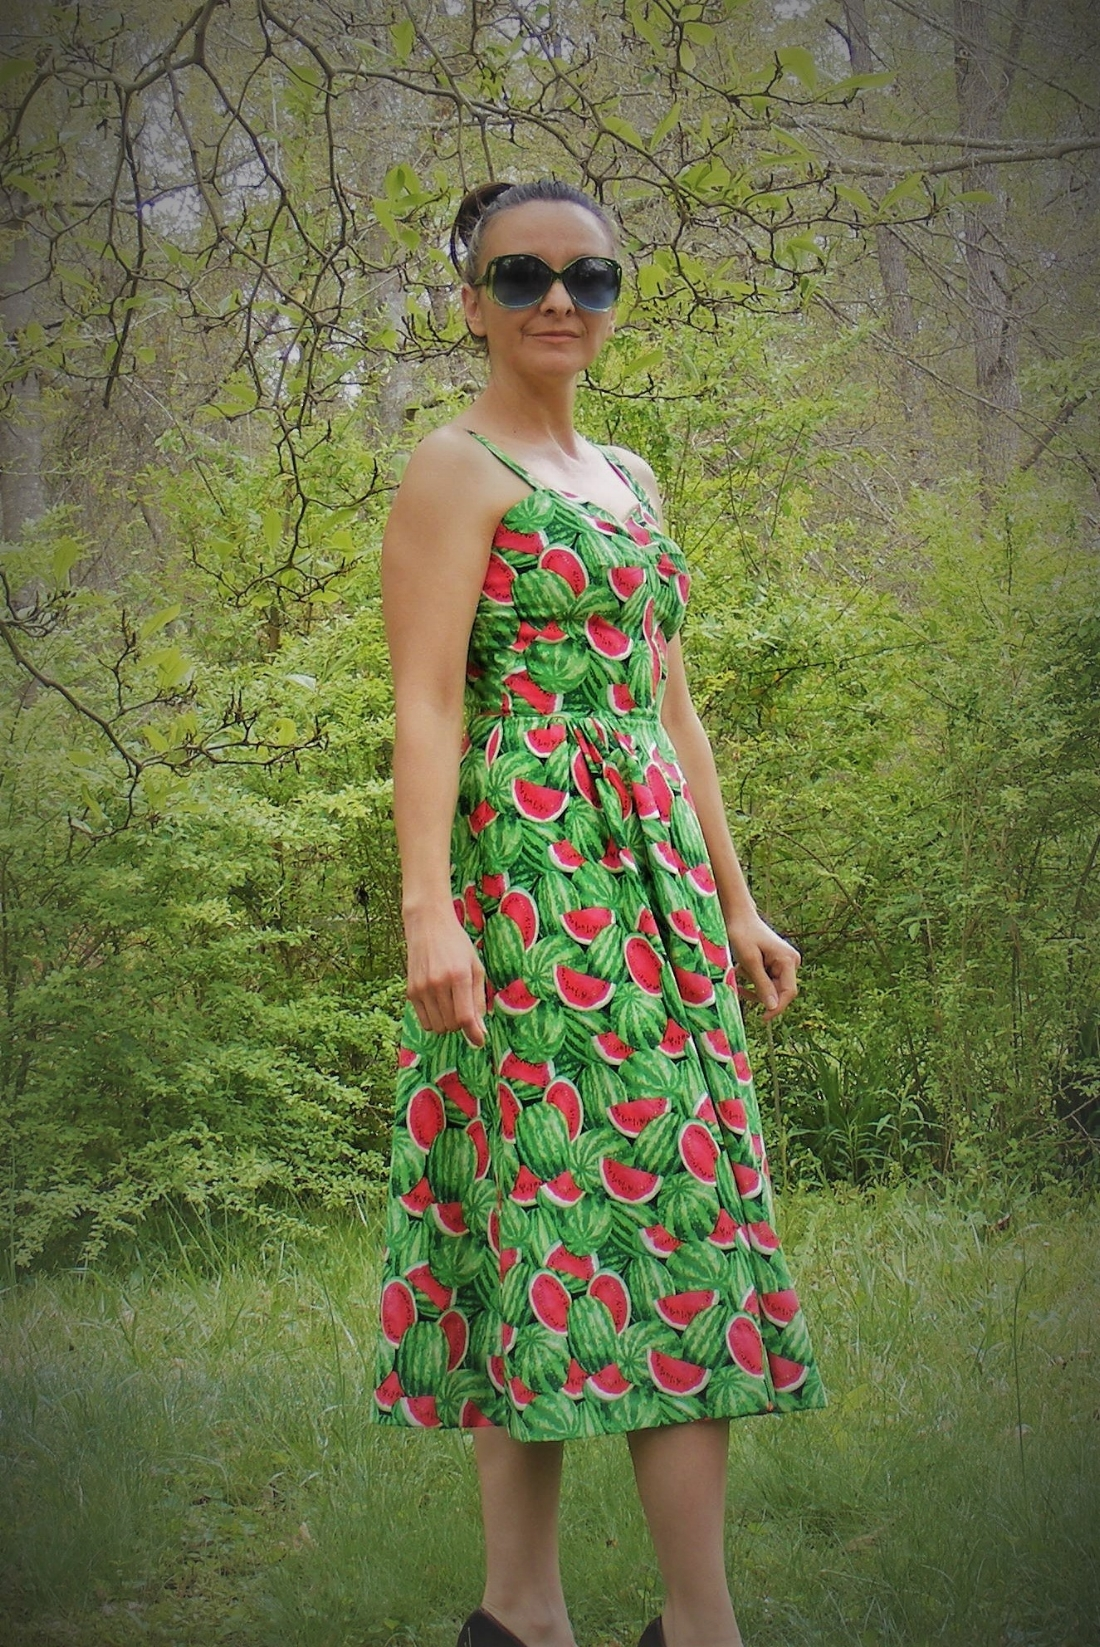 watermelon dress.jpg